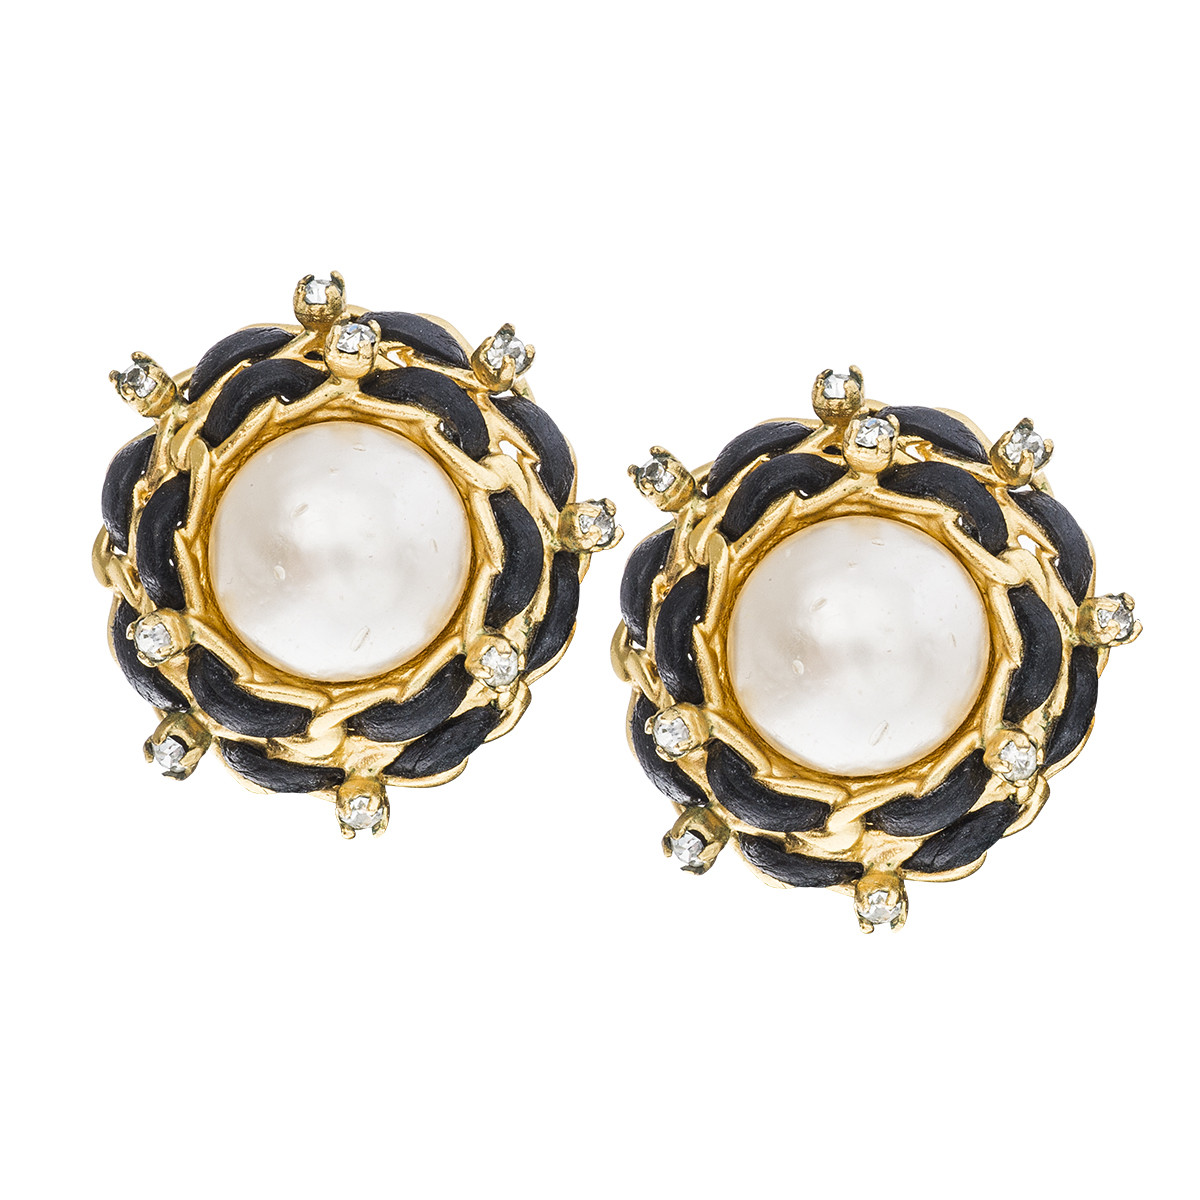 Vintage Chanel Pearl & Leather Earrings